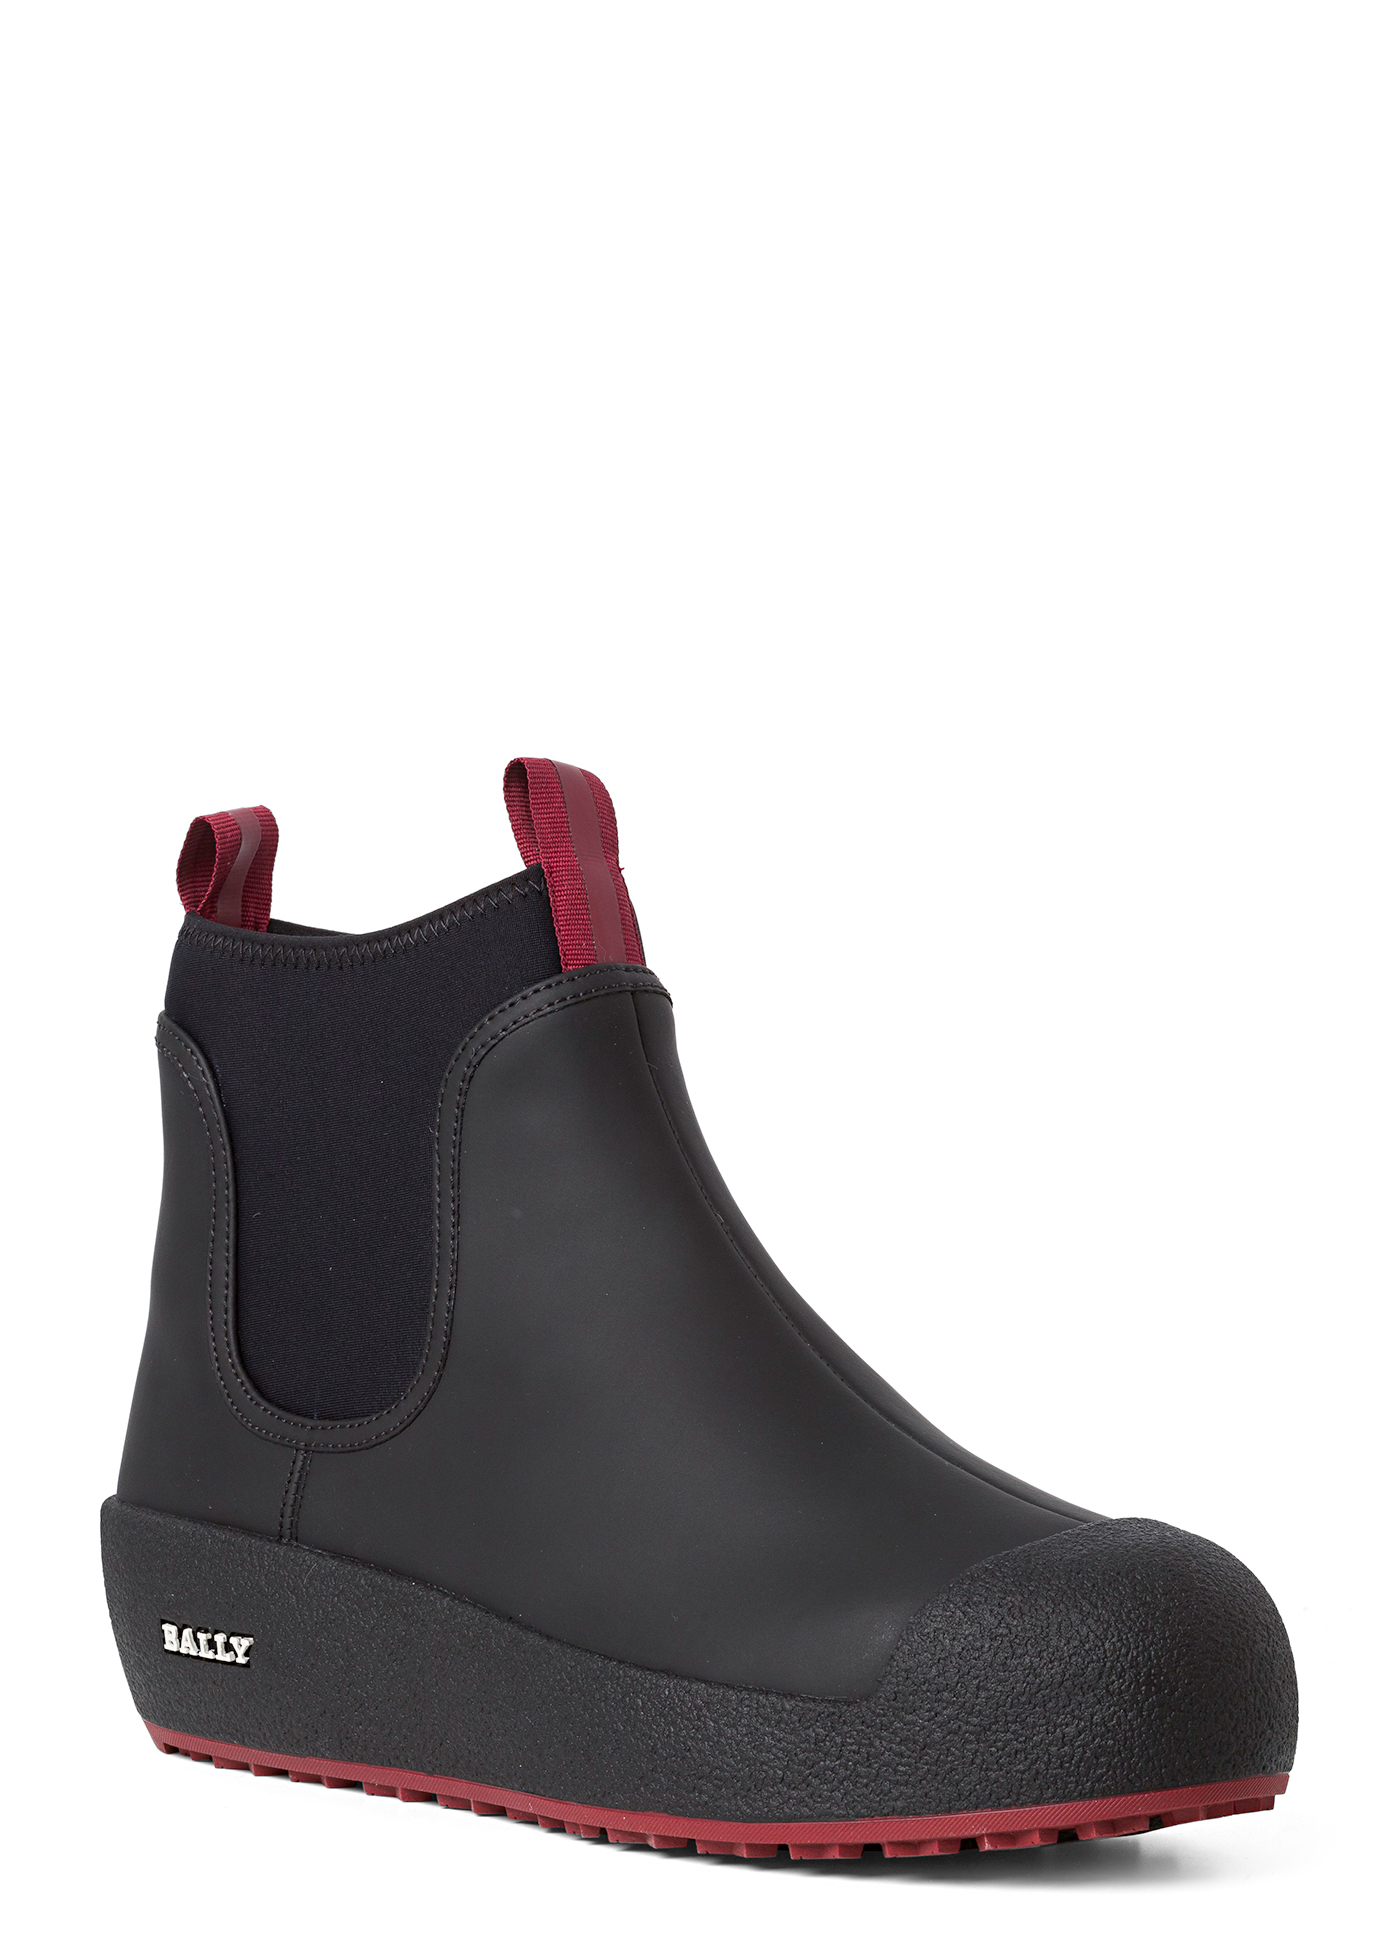 CUBRID/120 SNOW BOOT image number 1